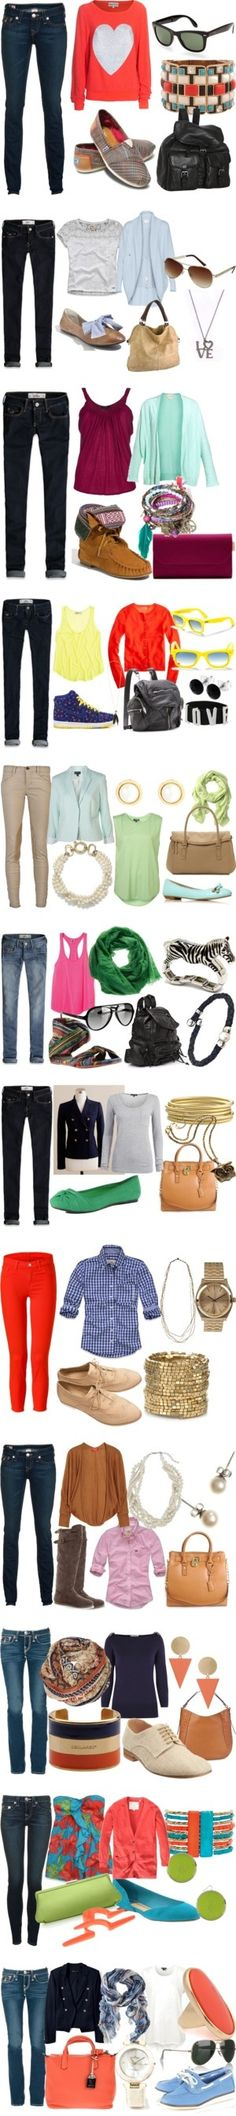 cute outfits for school/college